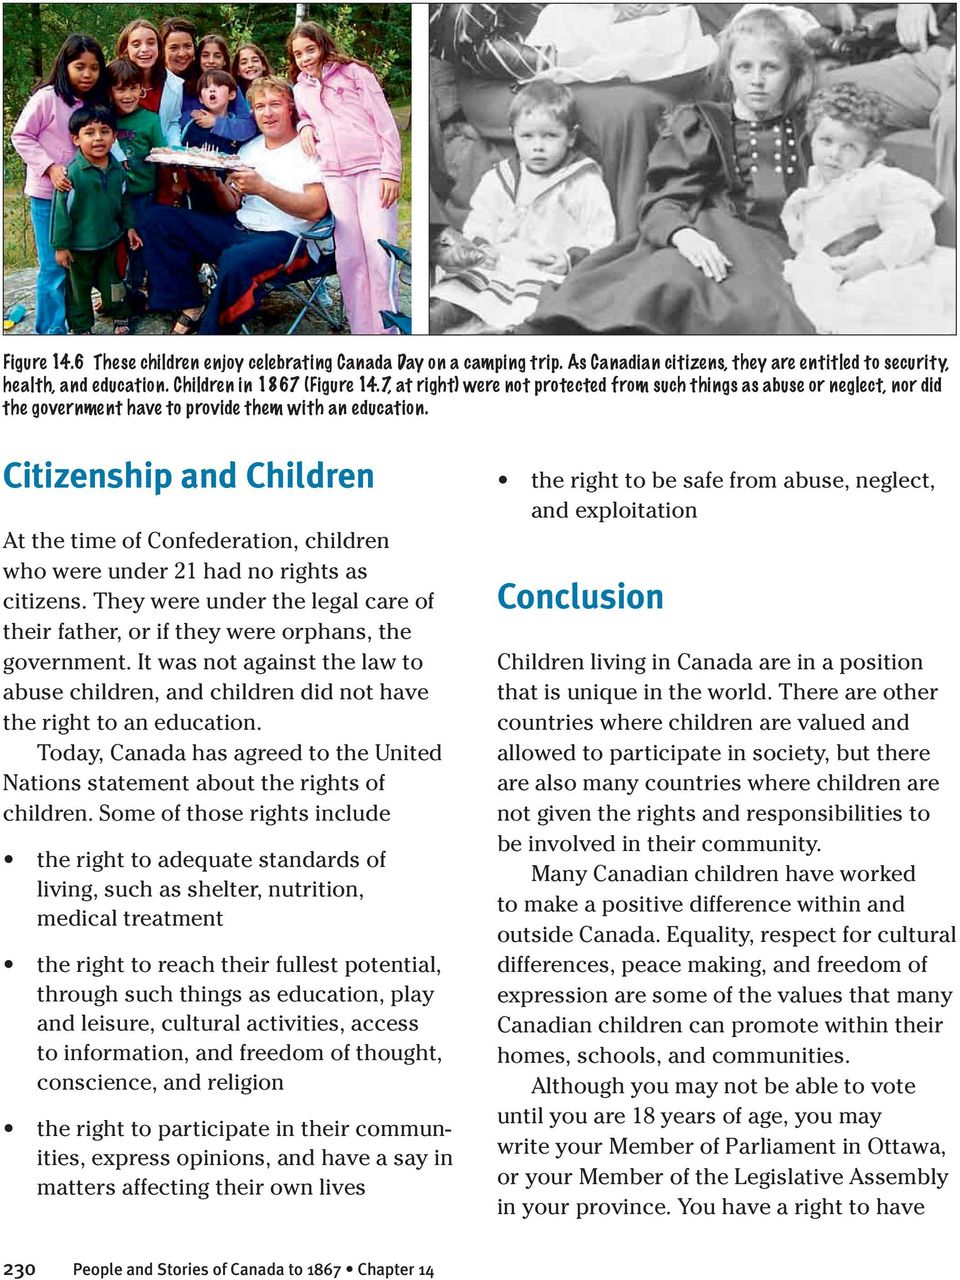 Citizenship and Children At the time of Confederation, children who were under 21 had no rights as citizens. They were under the legal care of their father, or if they were orphans, the government.